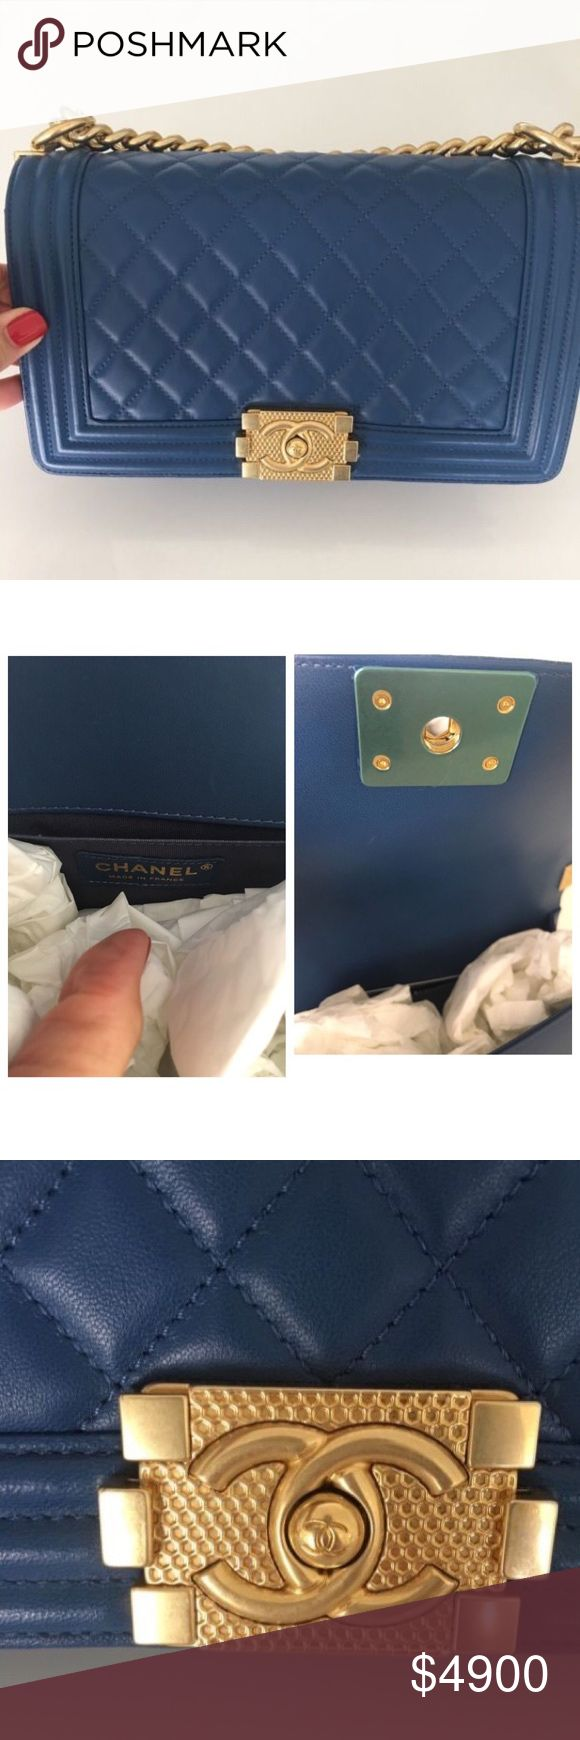 """CHANEL - Classic Boy Bag, Medium Blue BNWT Chanel - Boy Bag in Medium 